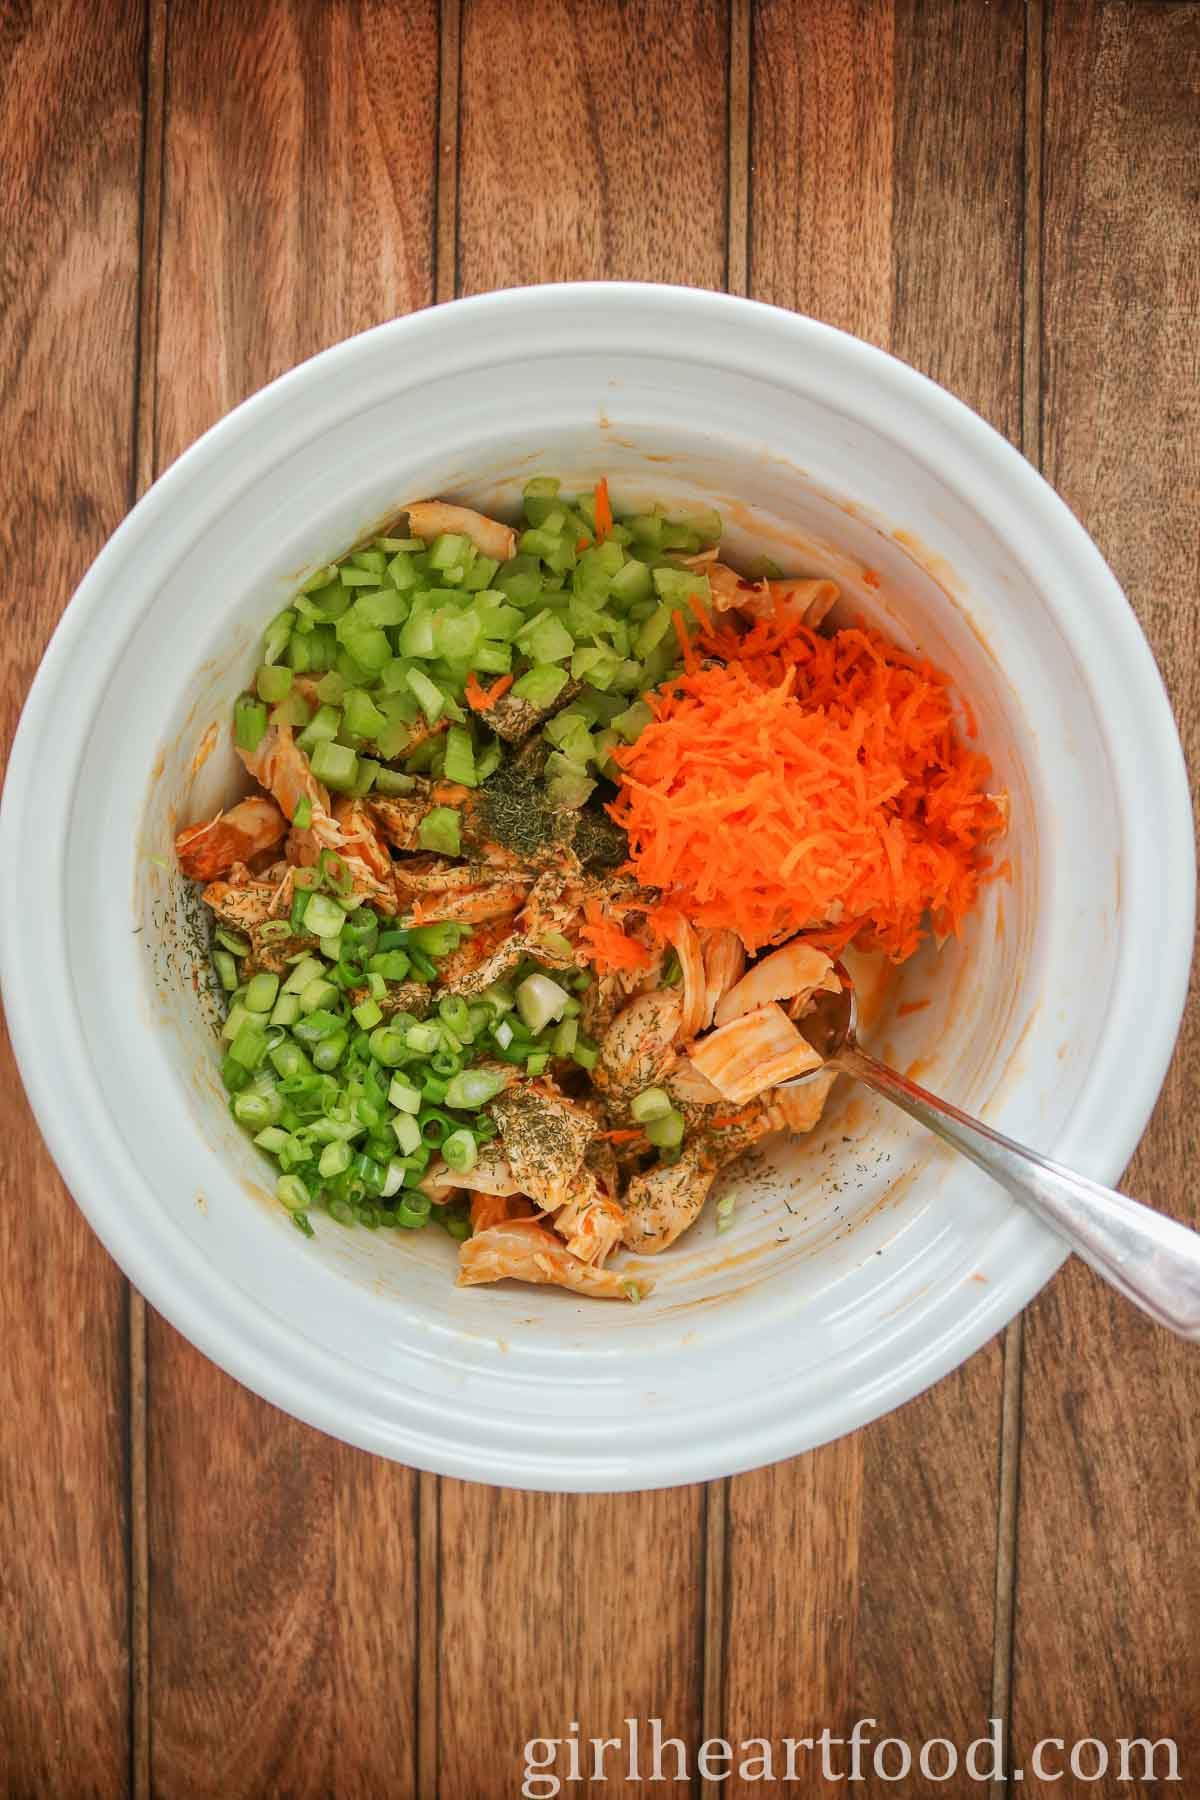 Buffalo chicken mixture with veggies in a white bowl and a spoon dunked into the mixture.